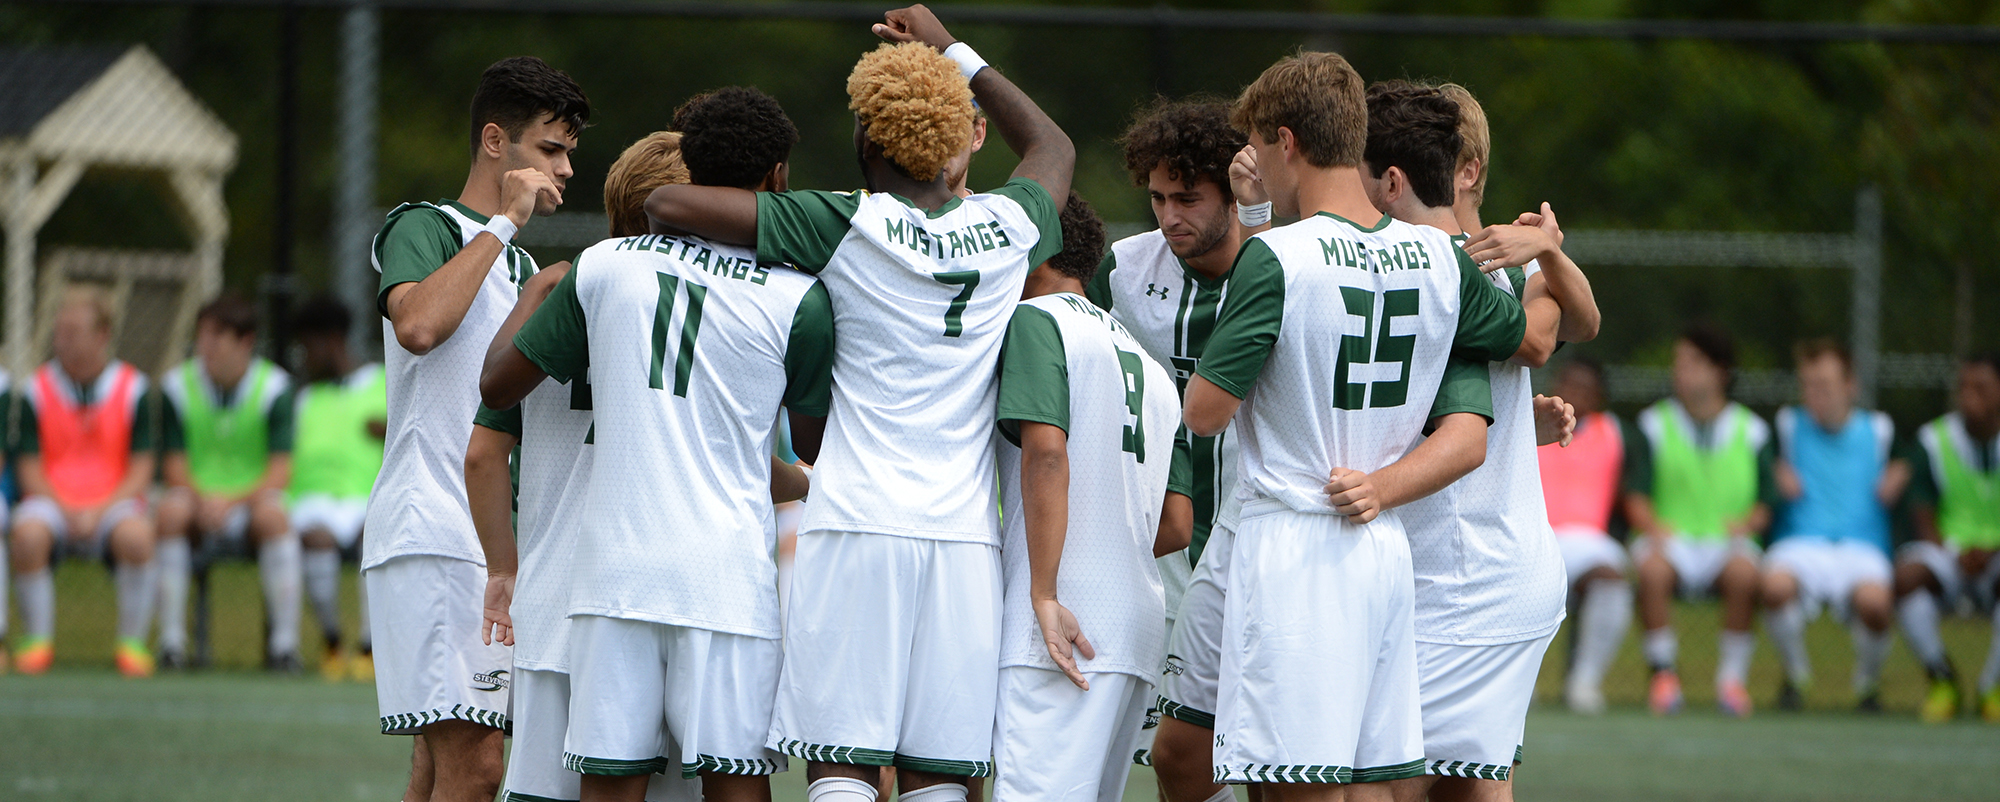 Men's Soccer 2018 Slate Kicks Off August 31